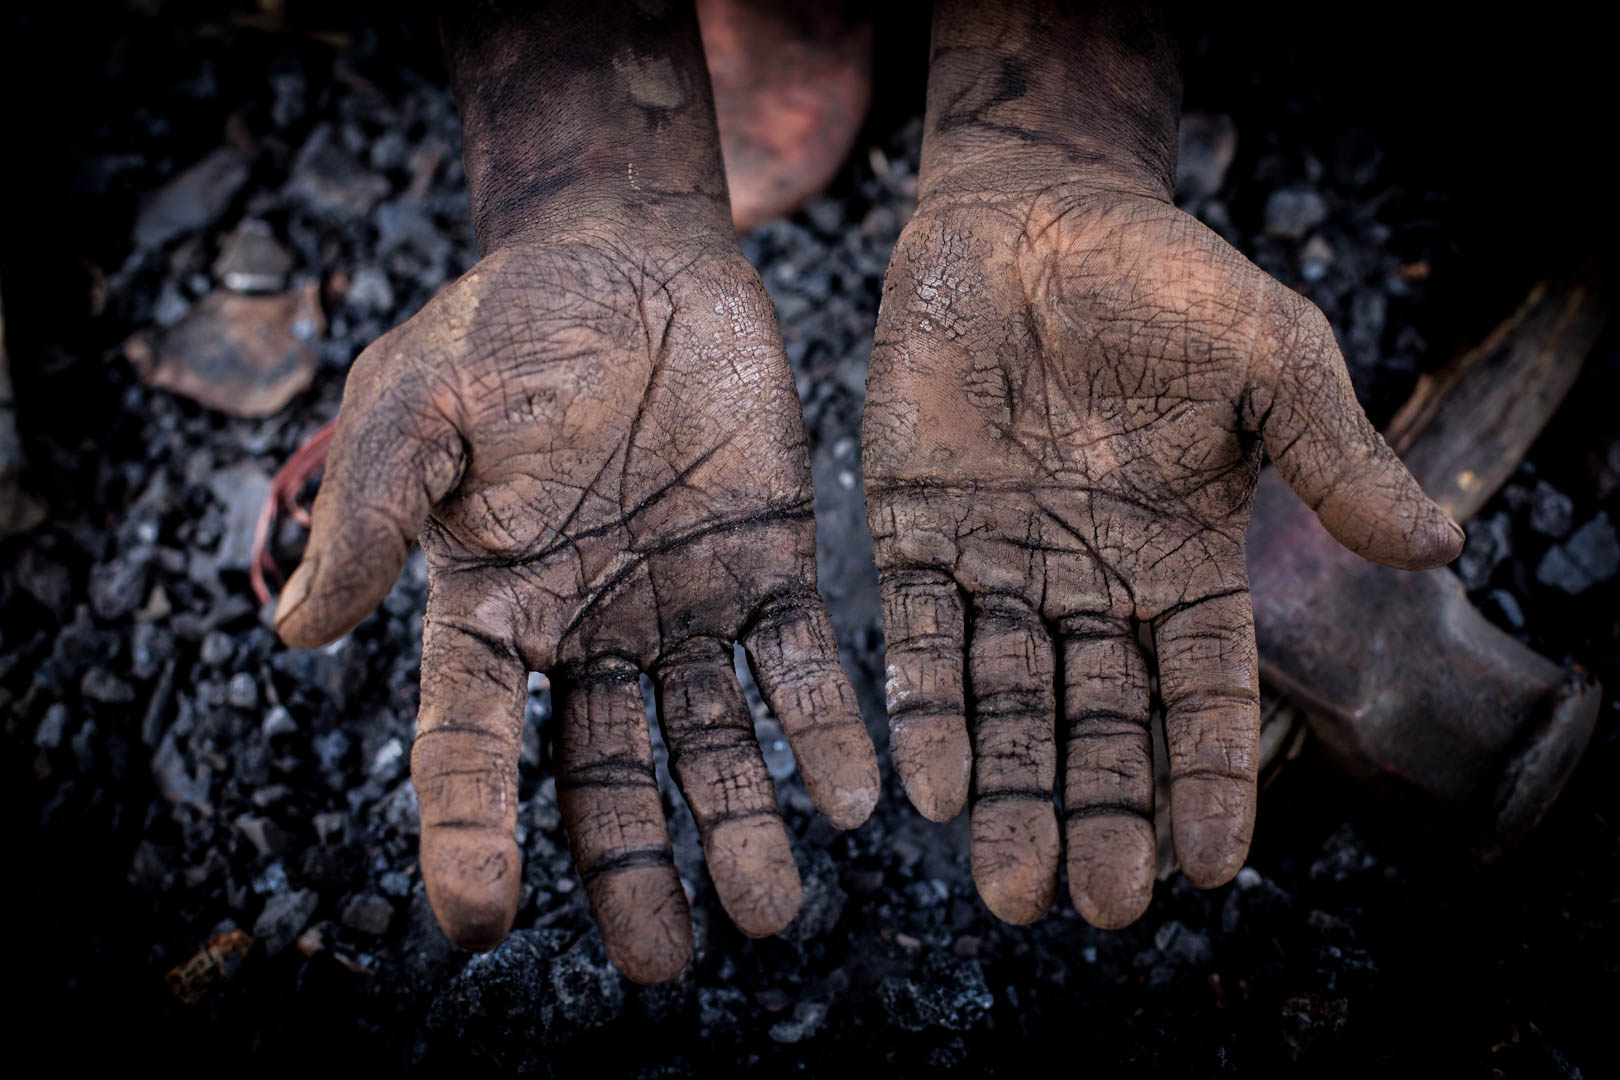 The hands of a coal miner at the end of his shift. They look like the varnish of an old oil painting.